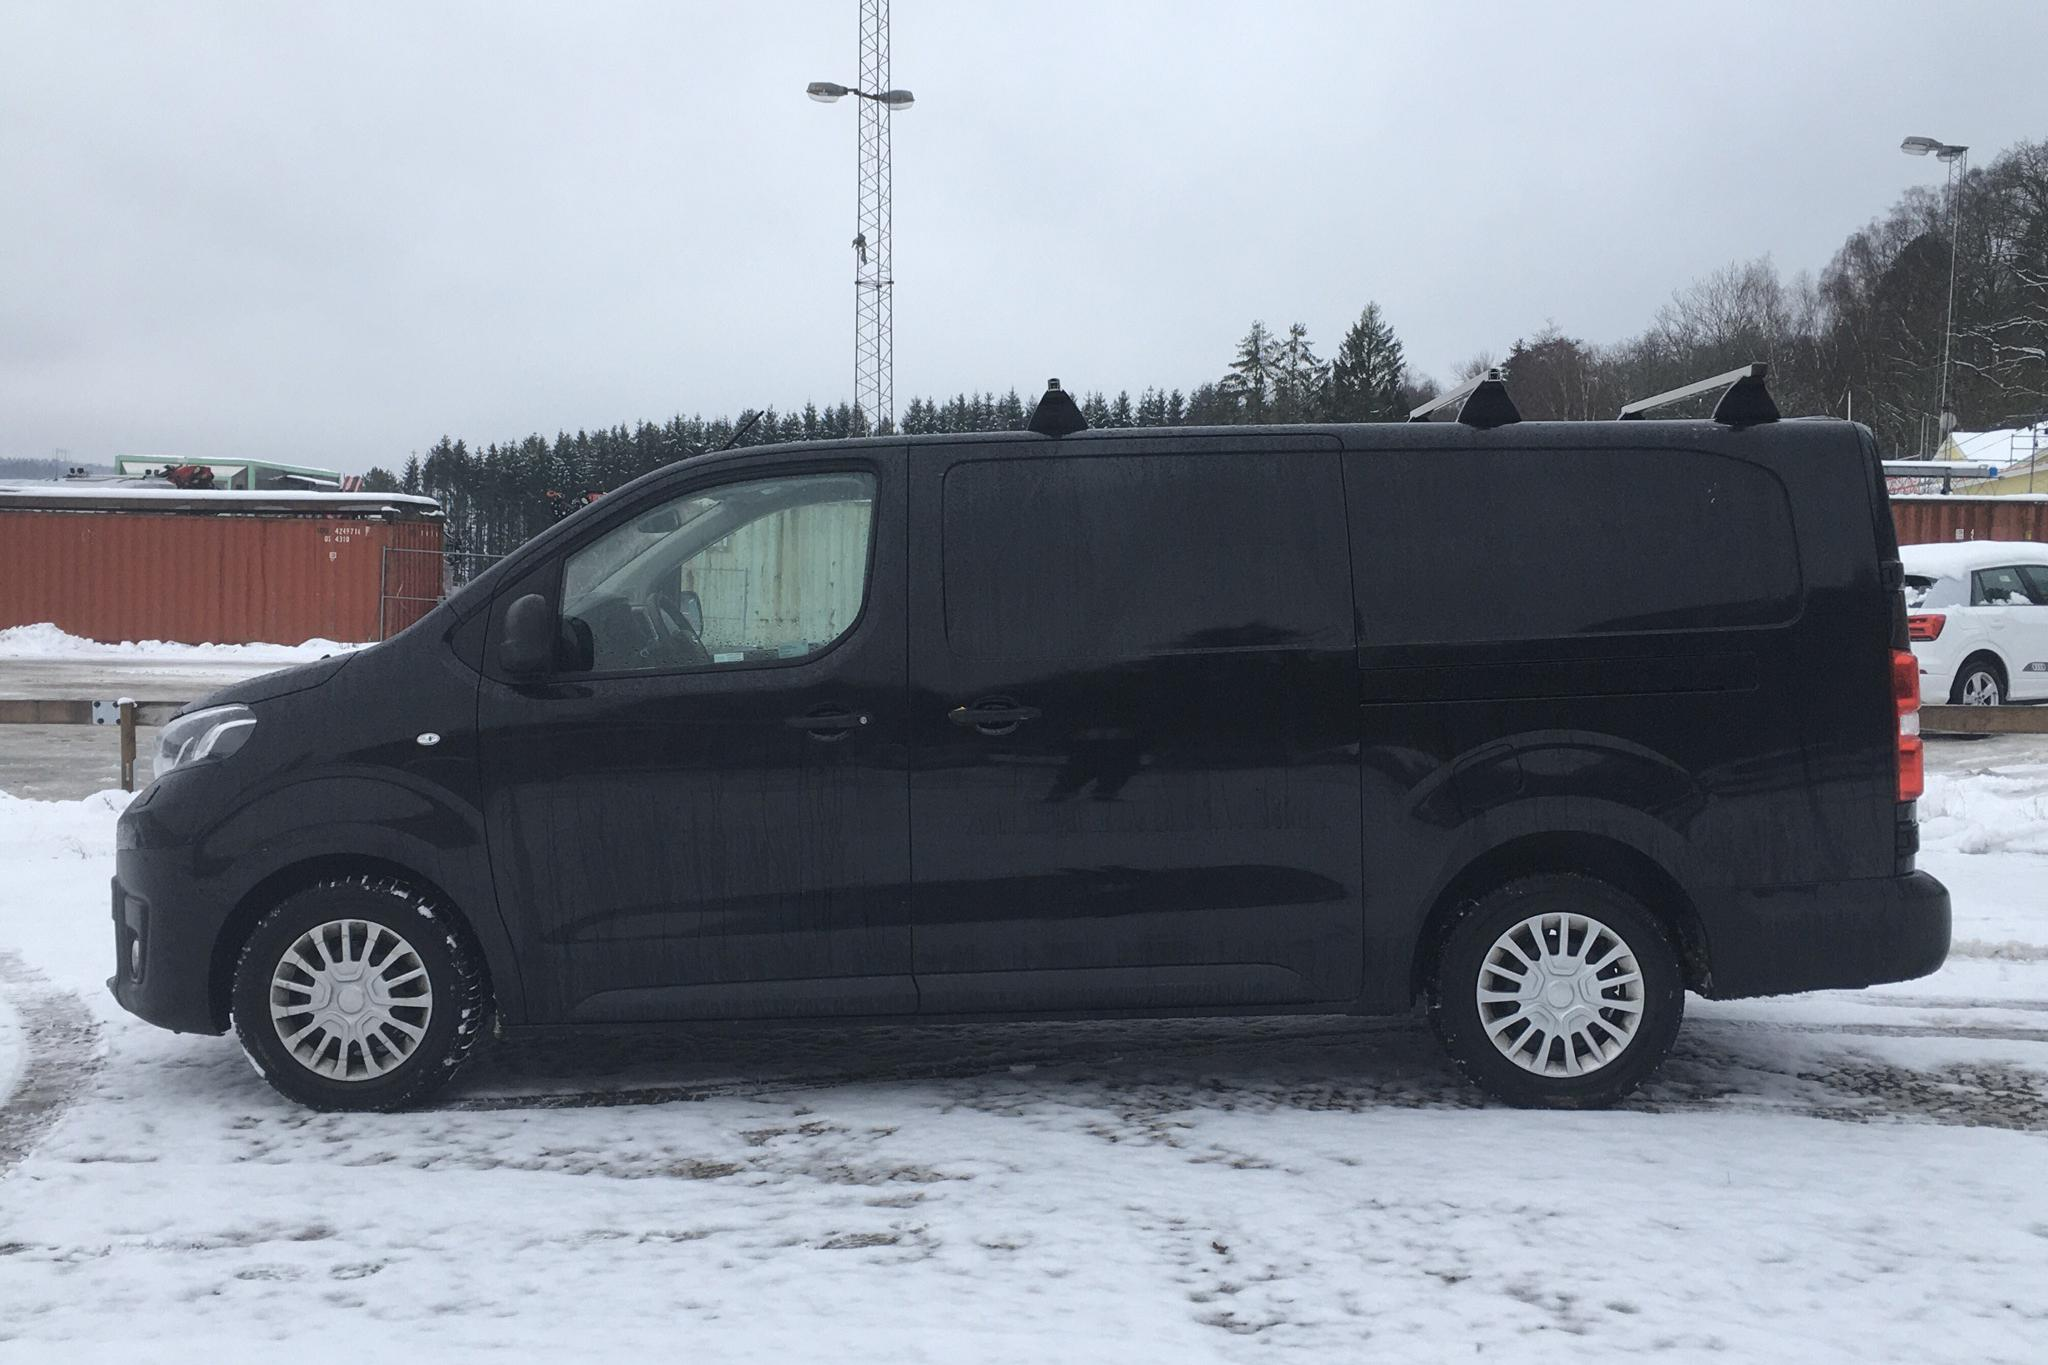 Toyota PROACE 2.0D (120hk) - 79 310 km - Manual - black - 2018